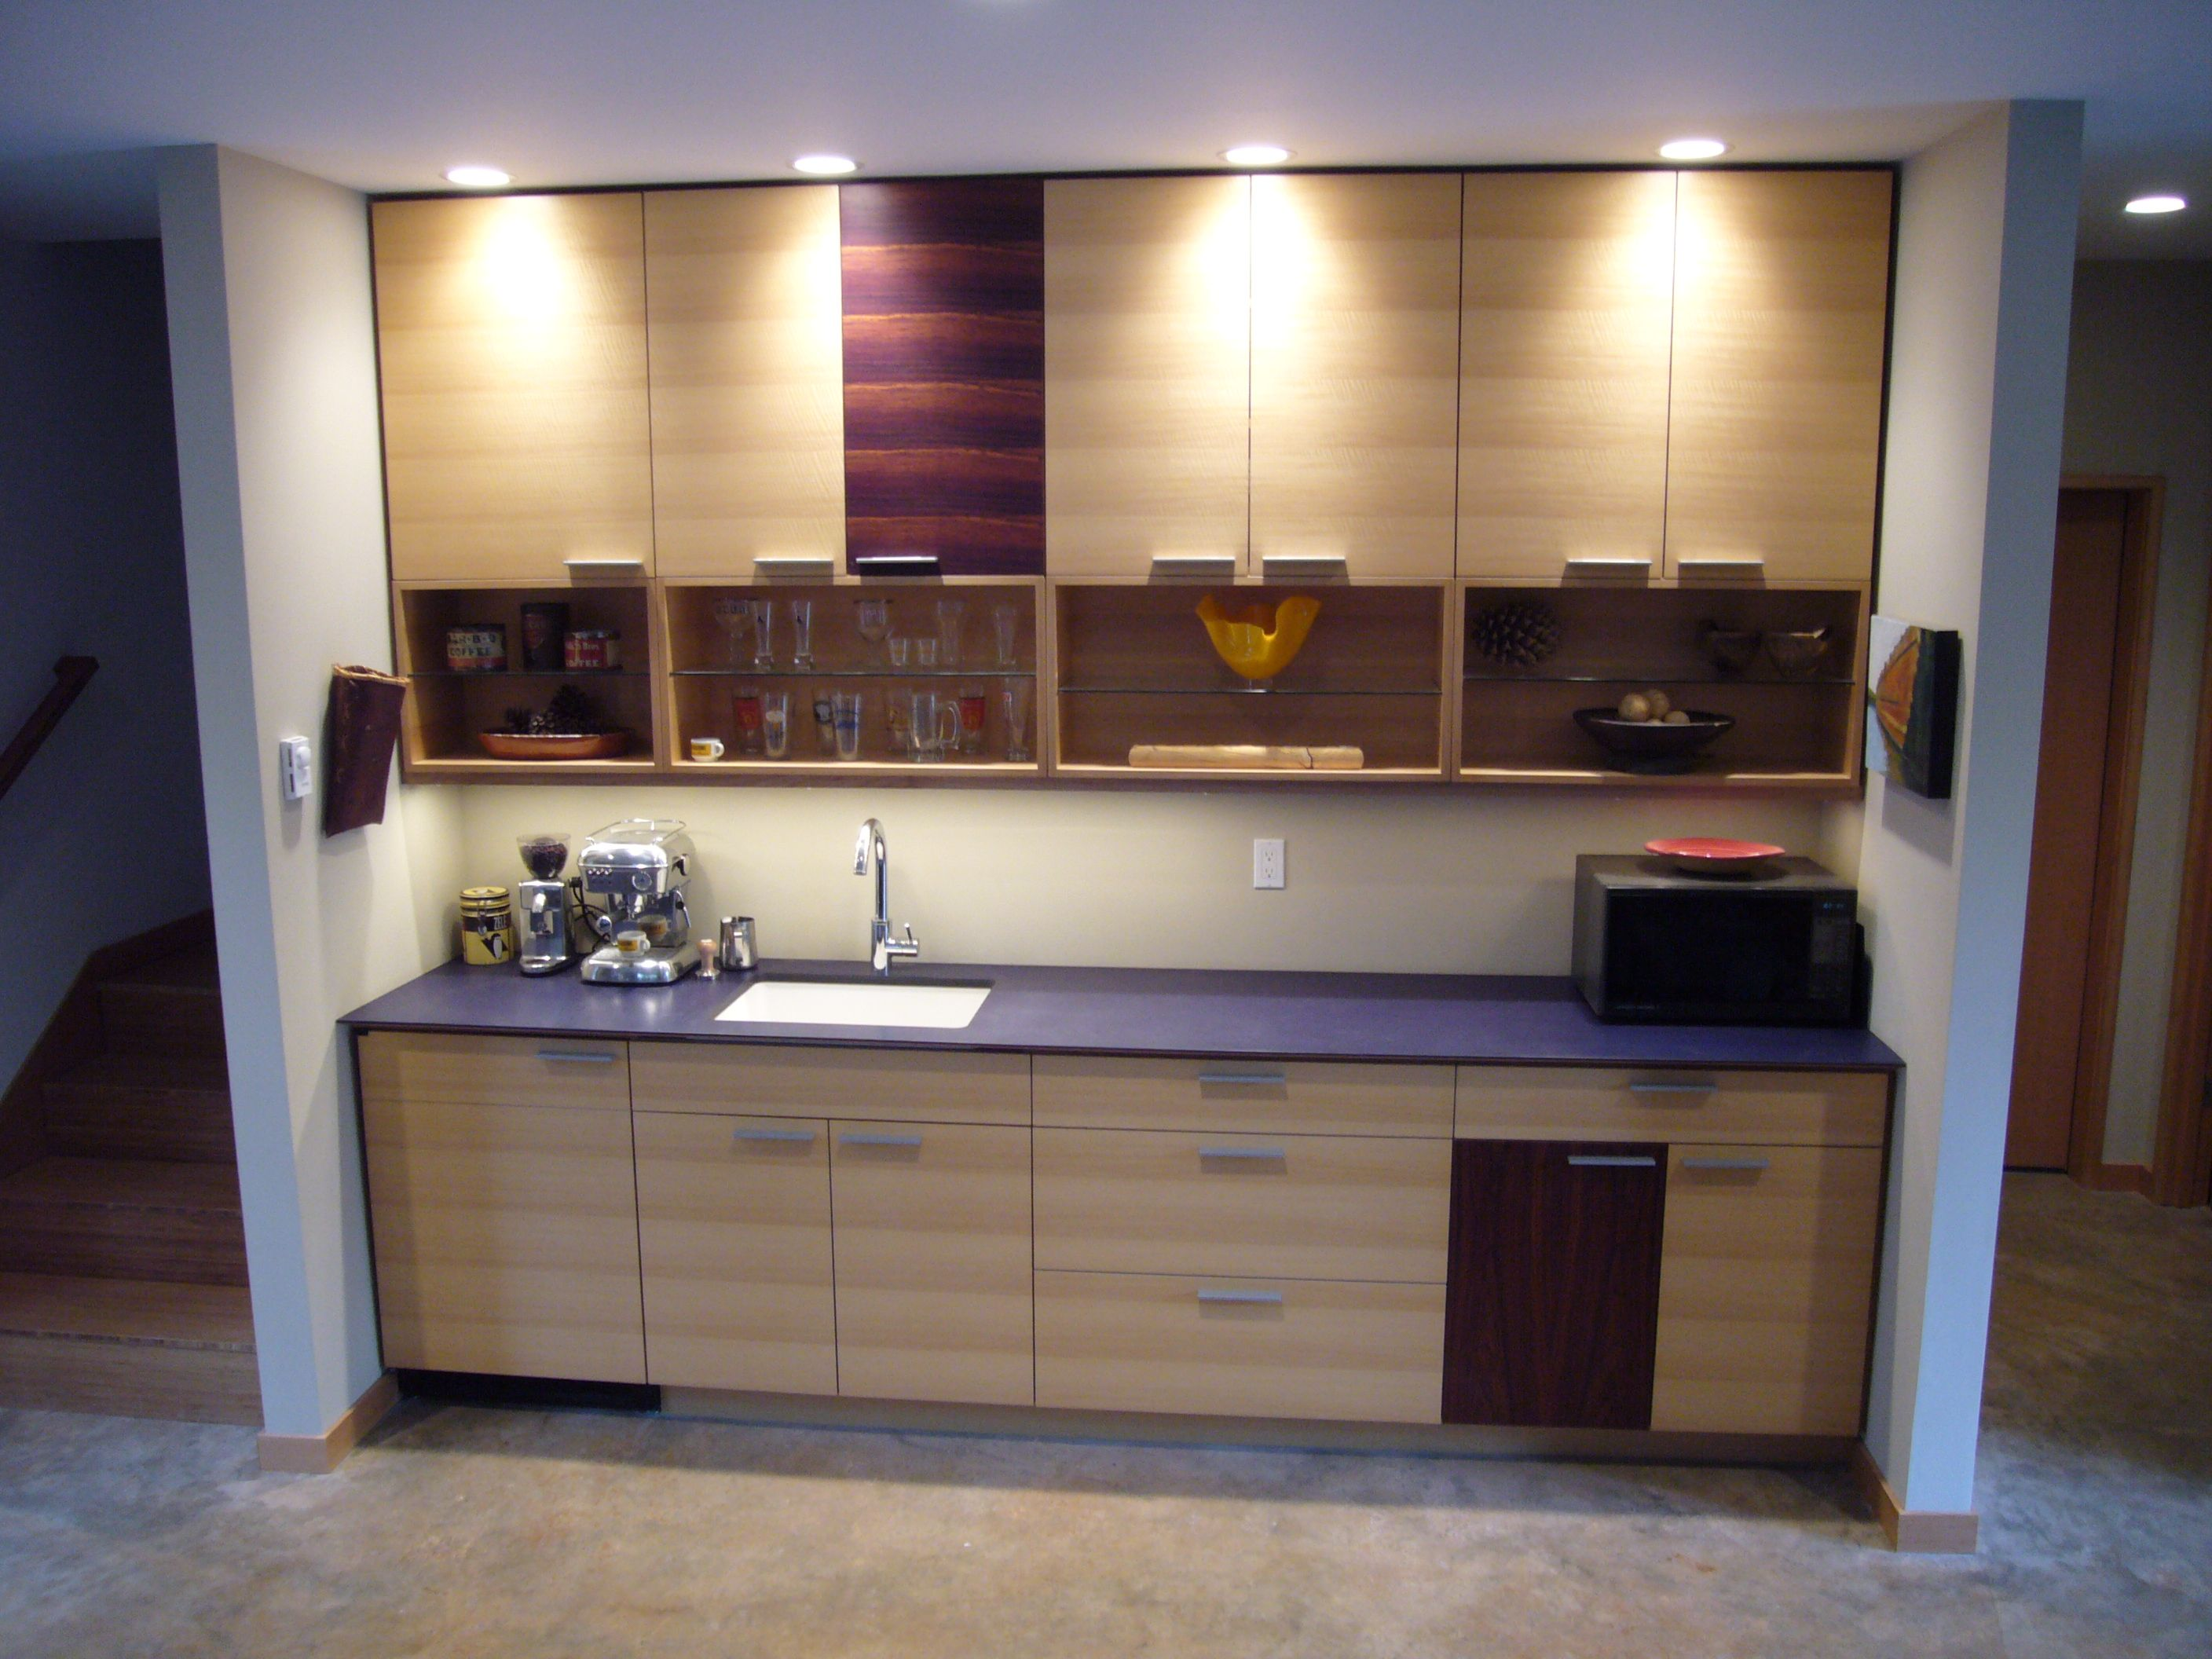 Medium Of Small Kitchenette Ideas